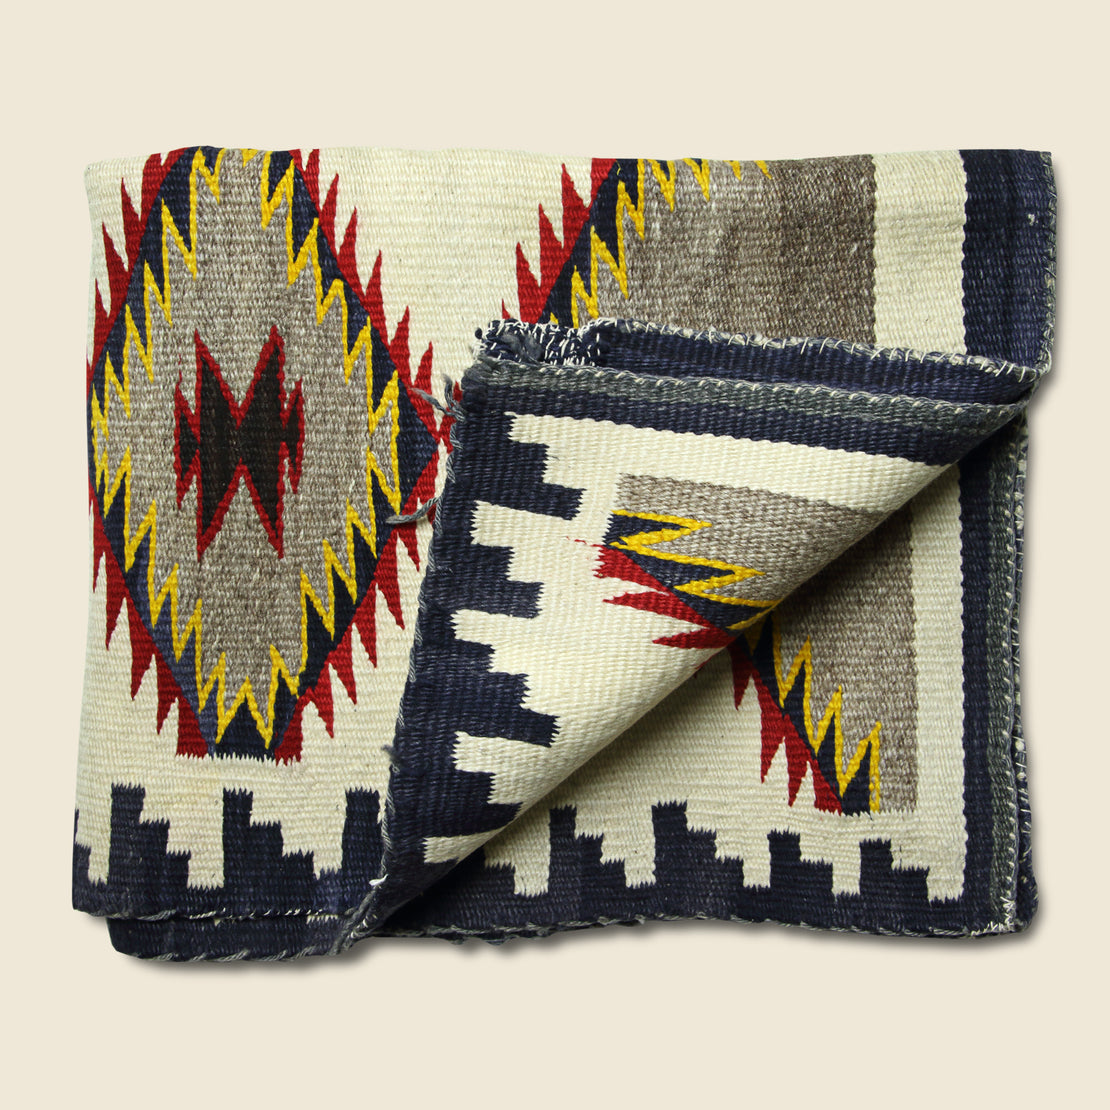 Vintage Hand-Woven Navajo Rug  - Yellow, Red, & Navy Eye Dazzler Pattern